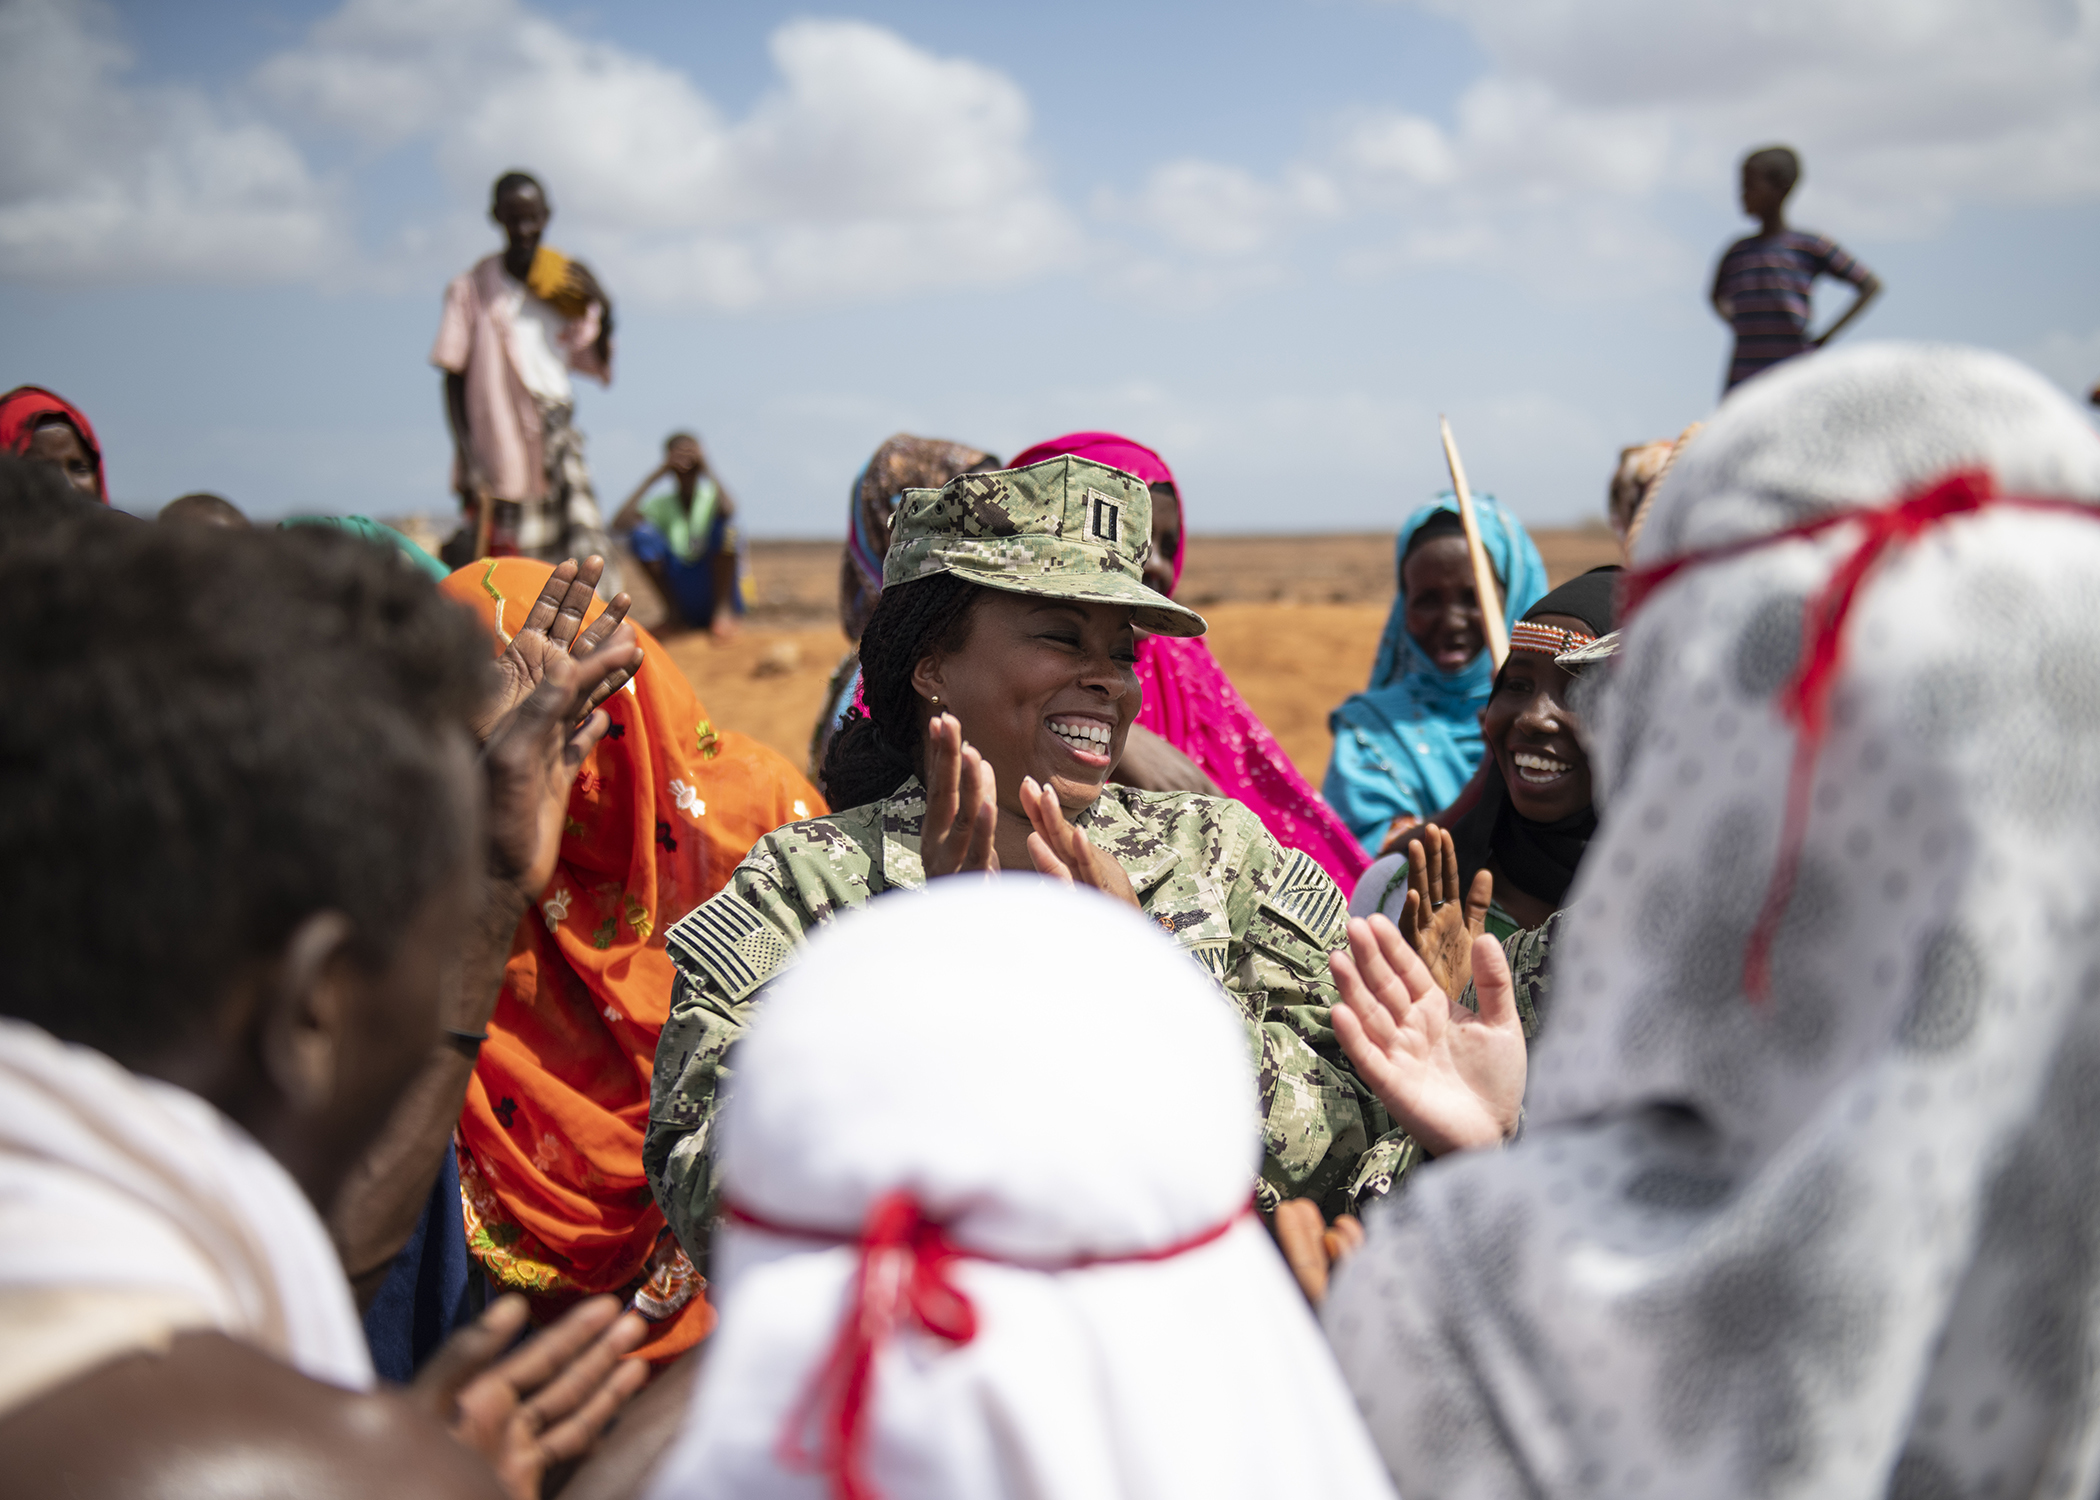 U.S. Navy Lt. Mellany George, an engineering project manager assigned to Combined Joint Task Force-Horn of Africa (CJTF-HOA), laughs as she dances with Djiboutian citizens before the Ali Oune Medial Clinic ribbon cutting ceremony in Ali Oune, Djibouti, Jan. 31, 2019. The clinic, which U.S. Navy Seabees from Naval Mobile Construction Battalion 1, assigned to CJTF-HOA, have been working to complete for five months, is intended to enhance the Ministry of Health for Djibouti's ability to provide basic medical, birth and after care to the Ali Oune village and its more than 1,000 residents and rural neighbors. (U.S. Air Force photo by Tech. Sgt. Shawn Nickel)